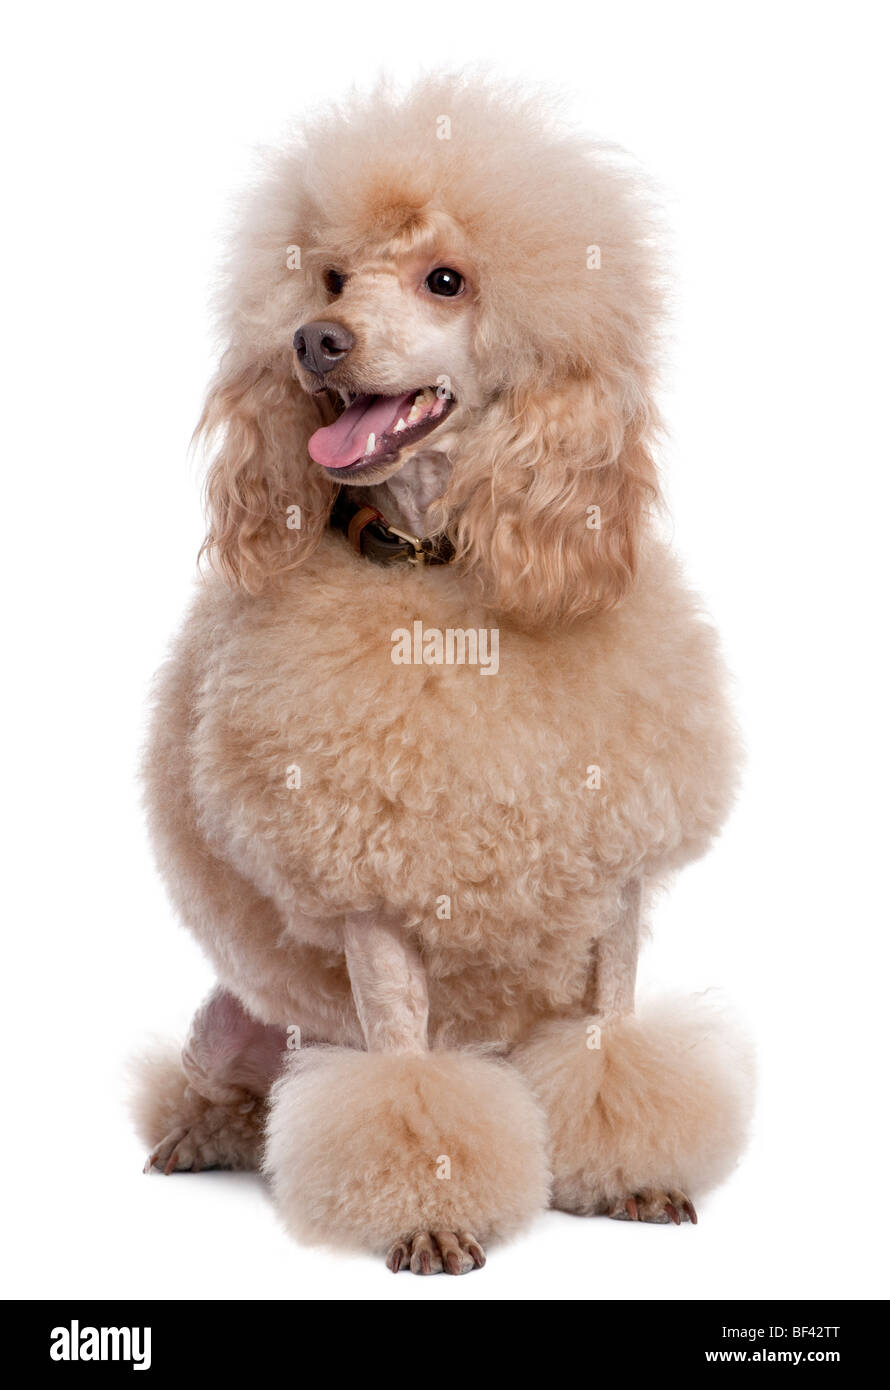 Groomed apricot poodle, 2 years old, in front of awhite background, studio shot - Stock Image